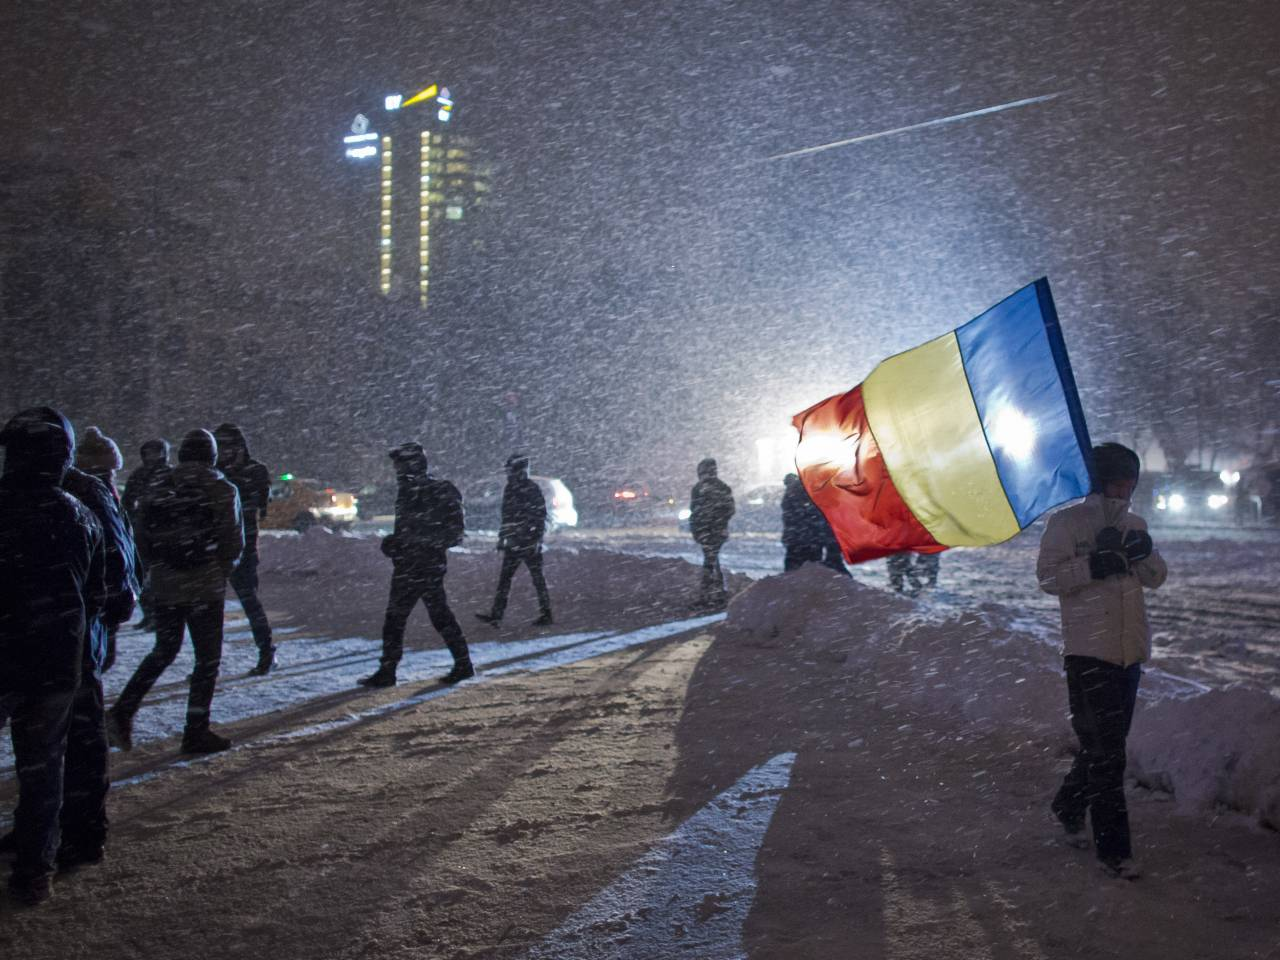 Romania justice minister resigns over anti-corruption protests